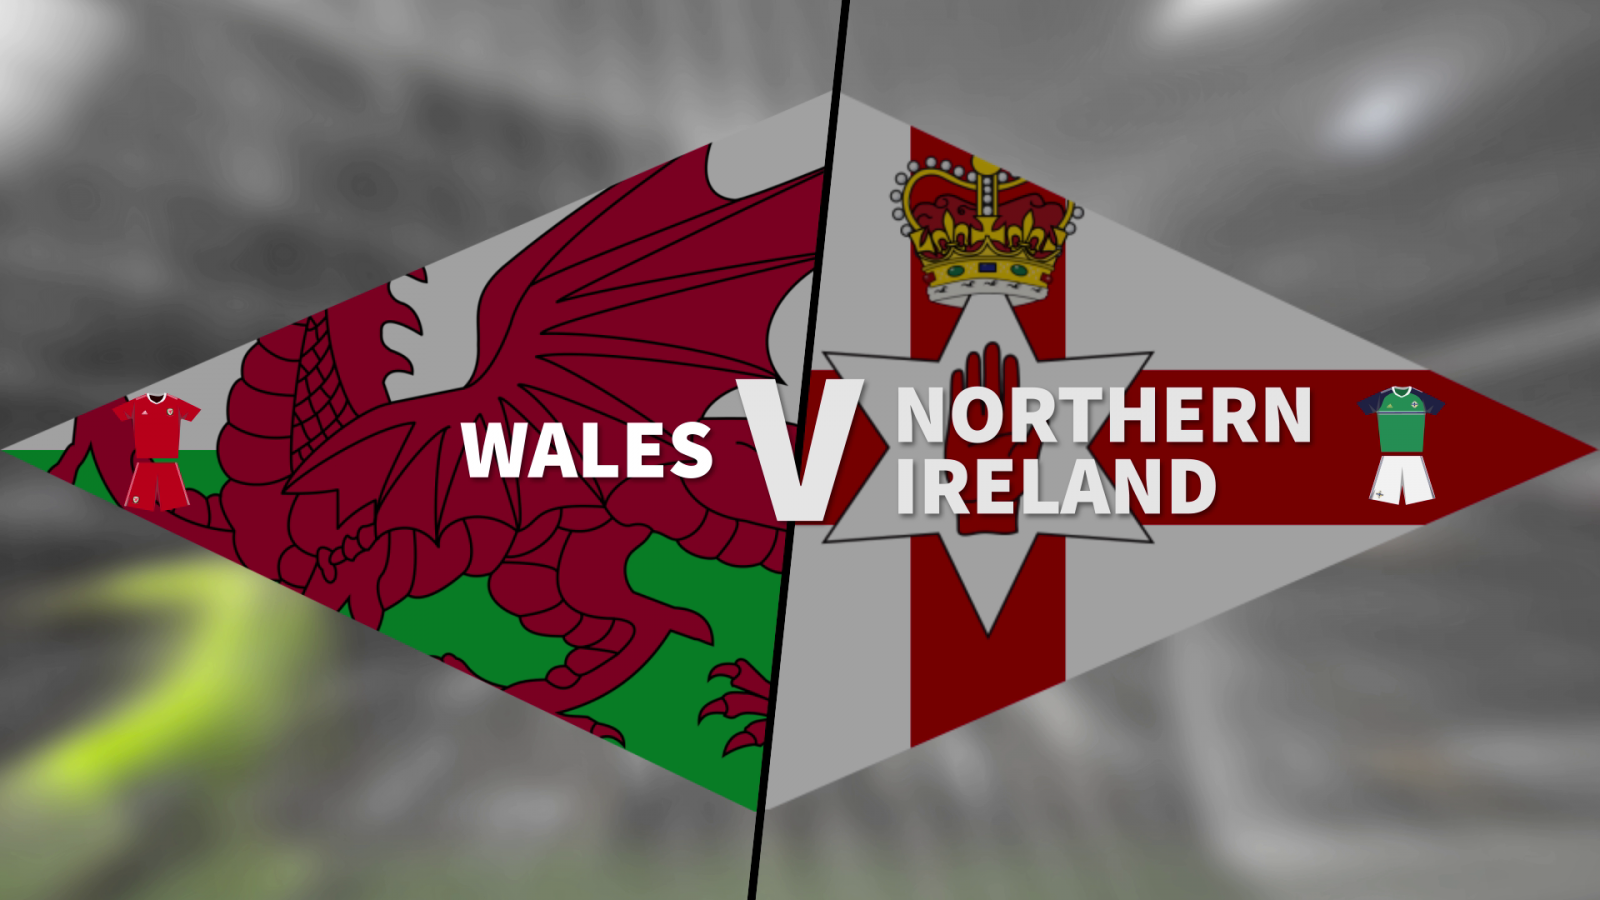 Wales vs Northern Ireland